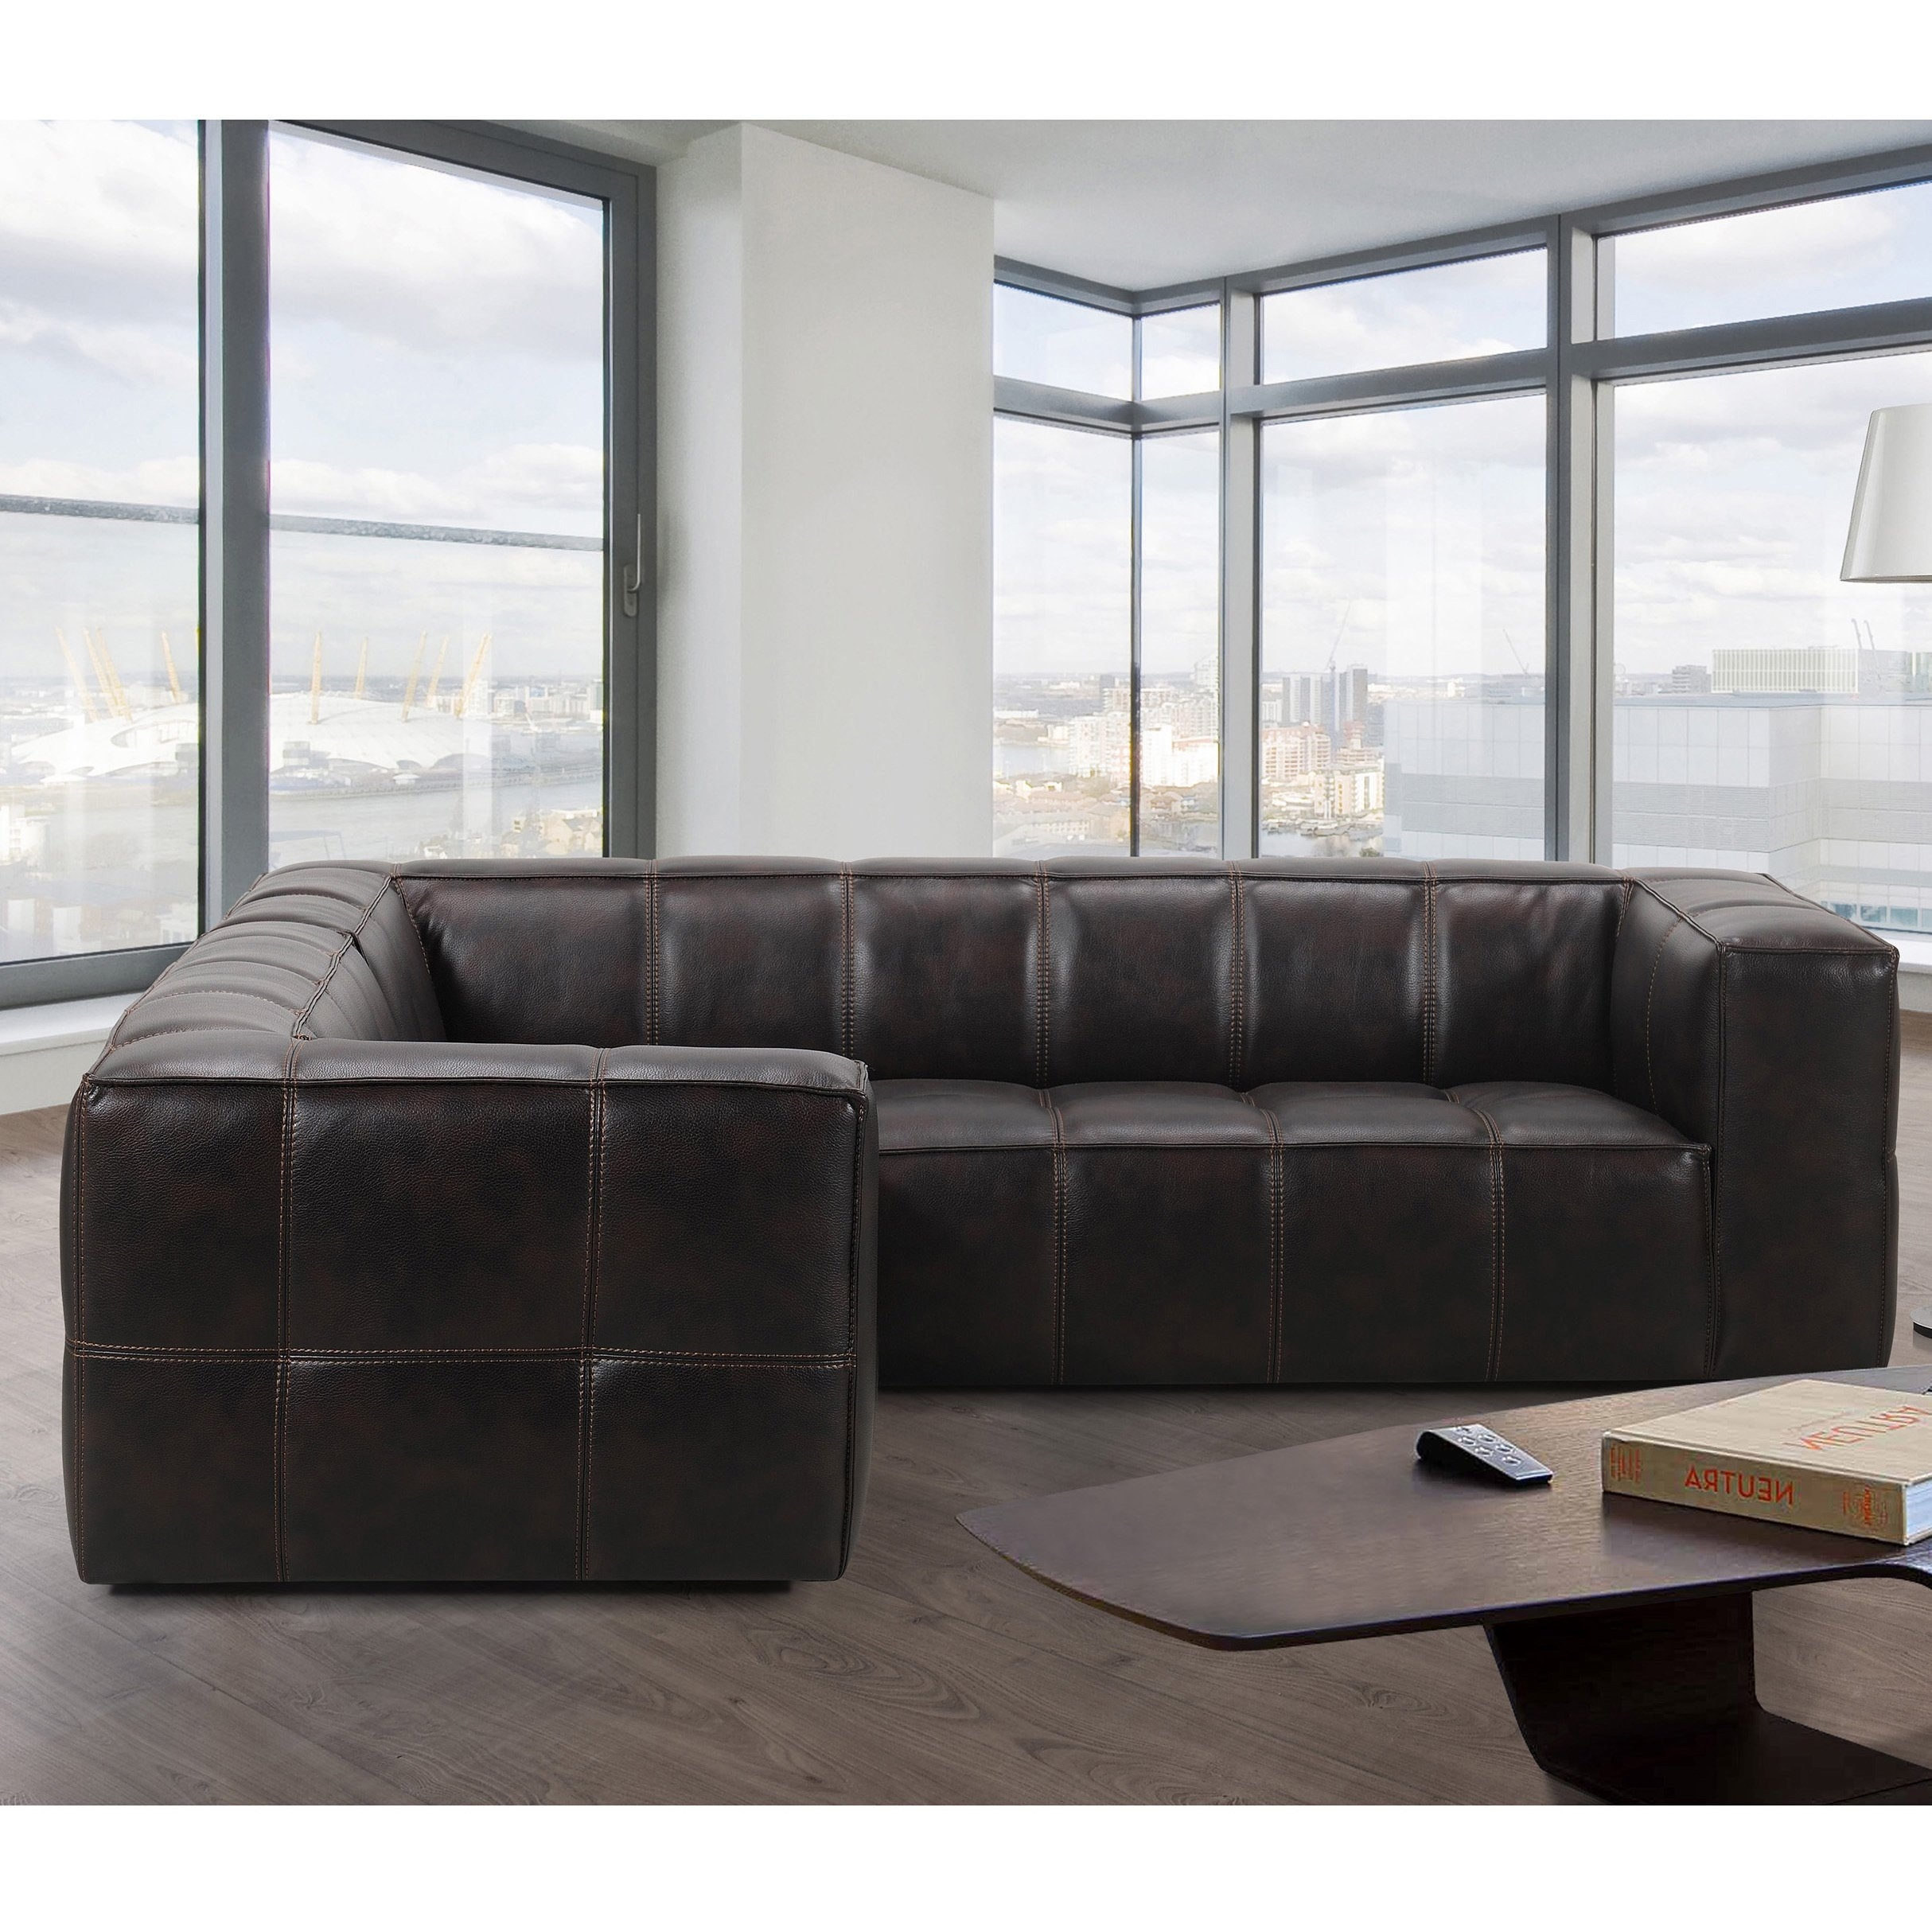 Shop Athens Memory Foam Sectional Sofa – Free Shipping Today Pertaining To Mesa Foam 2 Piece Sectionals (Image 20 of 25)